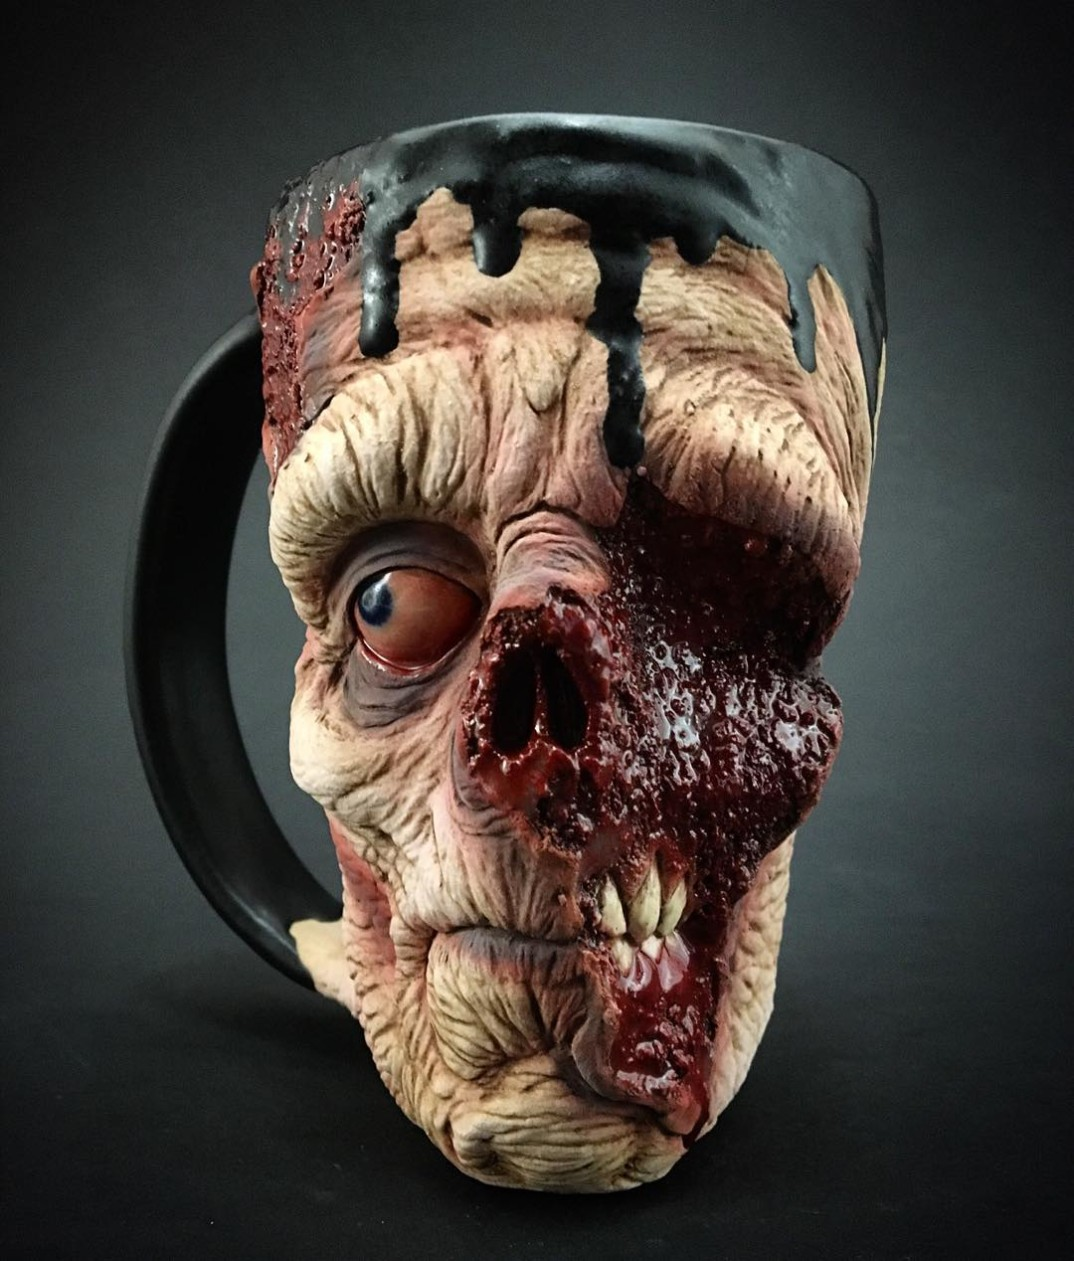 tazza-horror-zombie-joe-kevin-turkey-merck-5